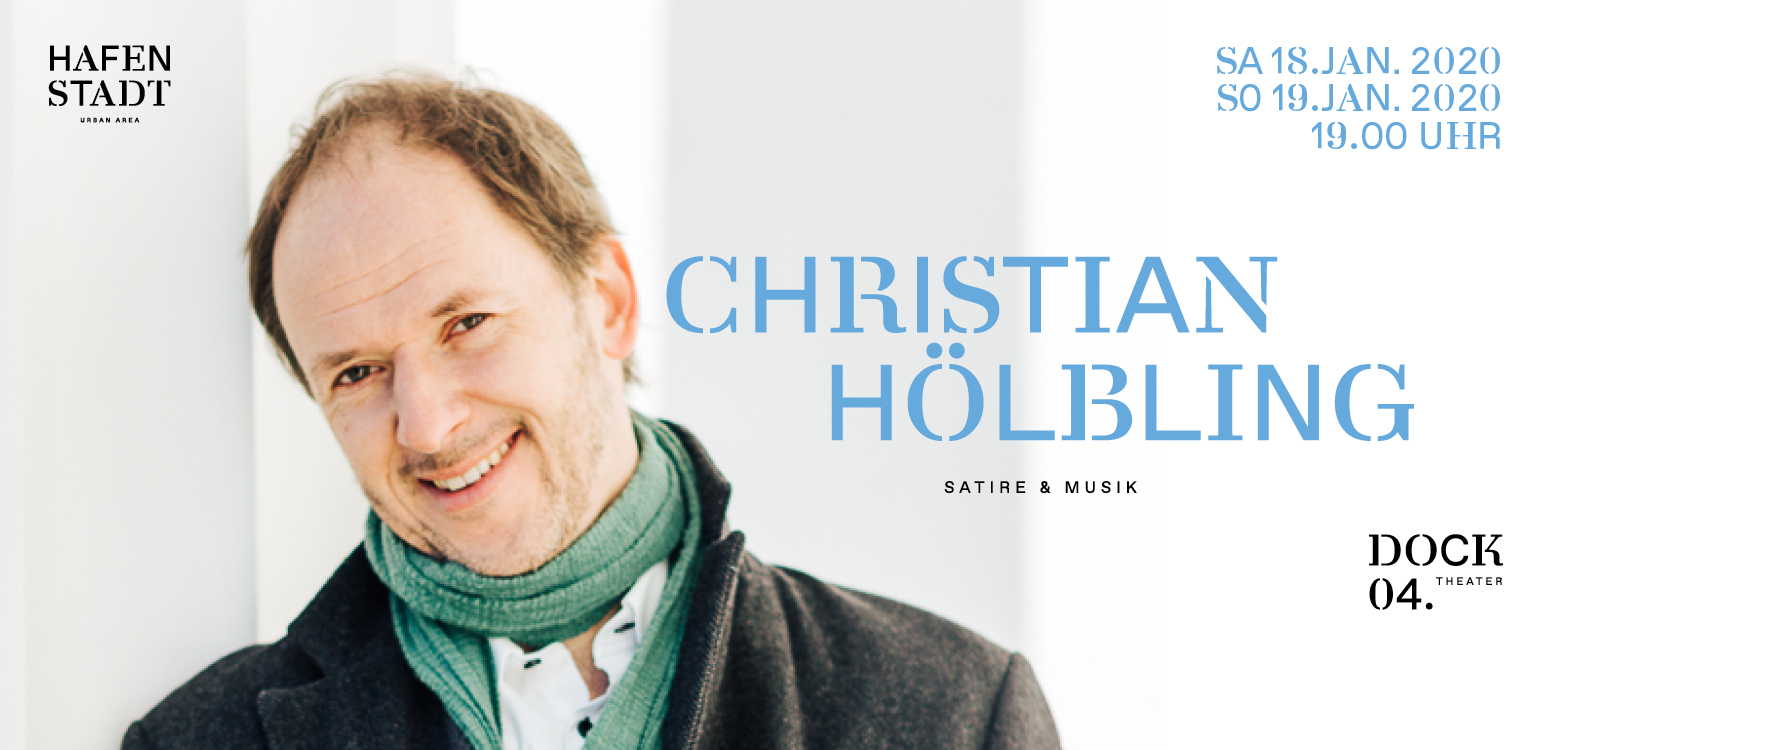 Christian Hölbling - Satire & Musik am 18. January 2020 @ Hafenstadt Urban Area.